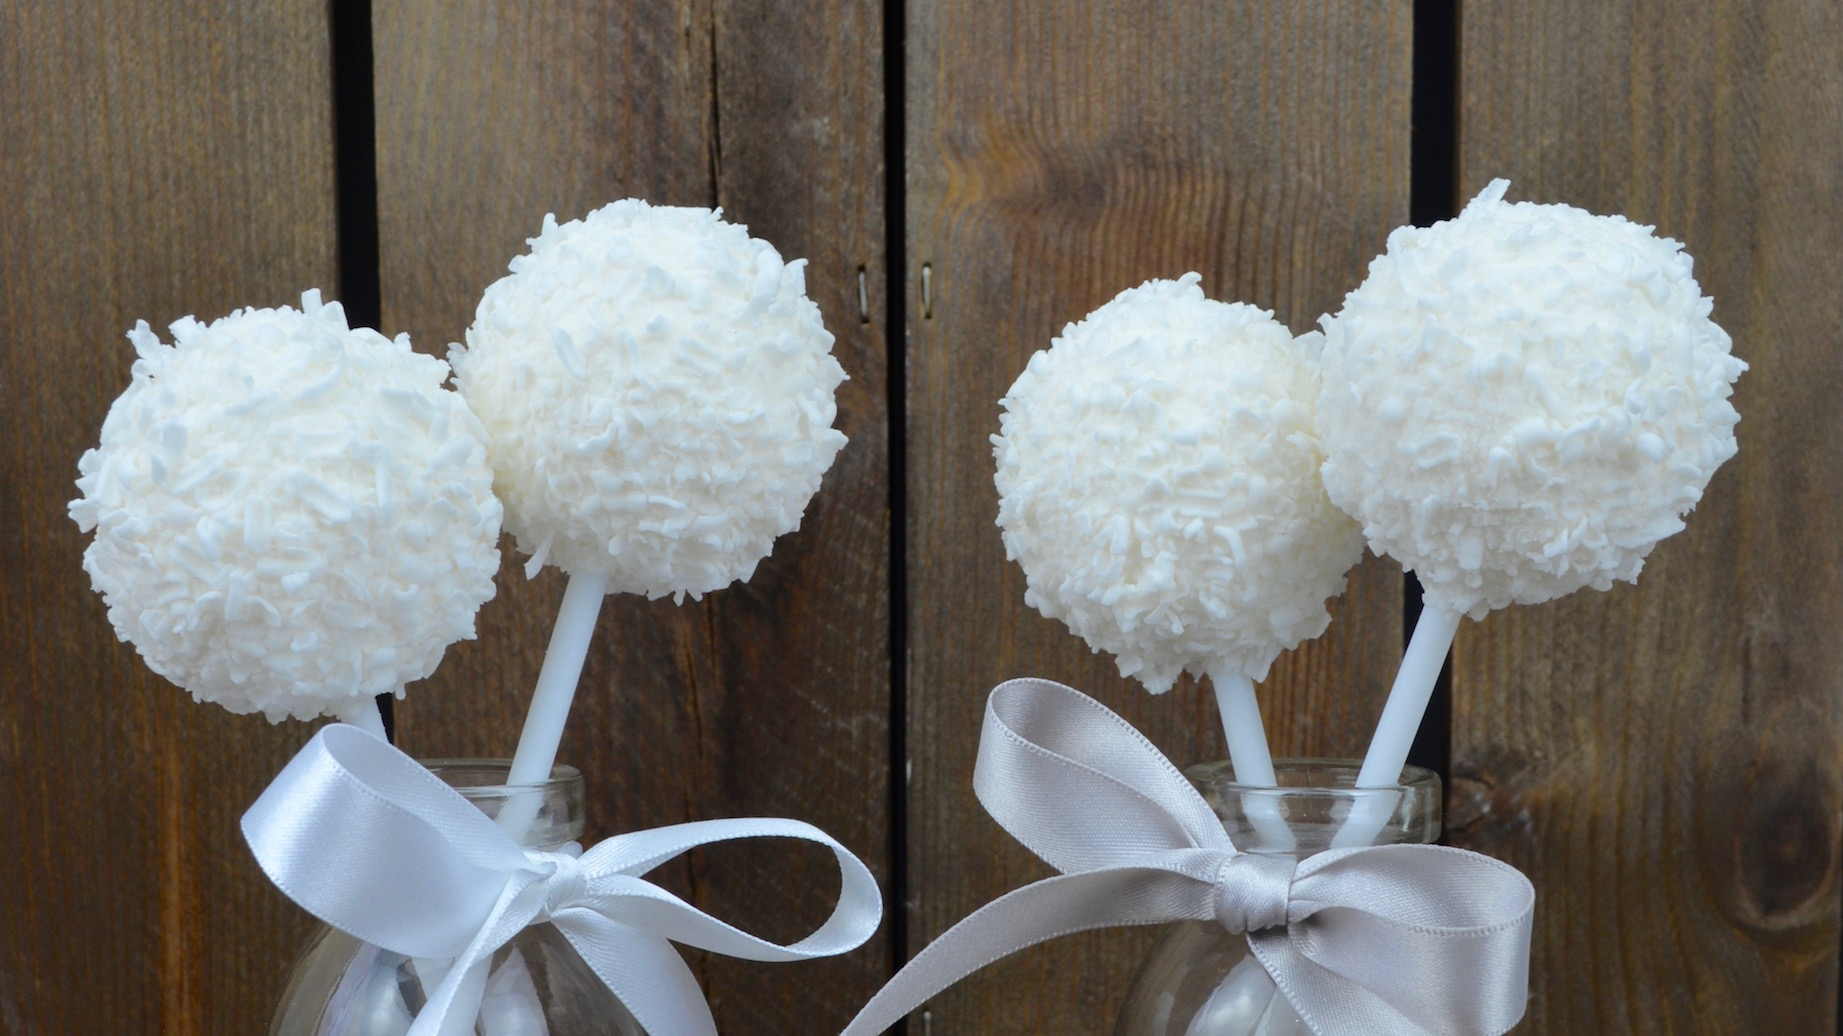 Cake Pops - Our cake pops come in a range of flavours and are hand made from the finest crumbed sponge cake mixed with light and fluffy buttercream. We can decorate in a range of designs to tie in with your wedding theme.